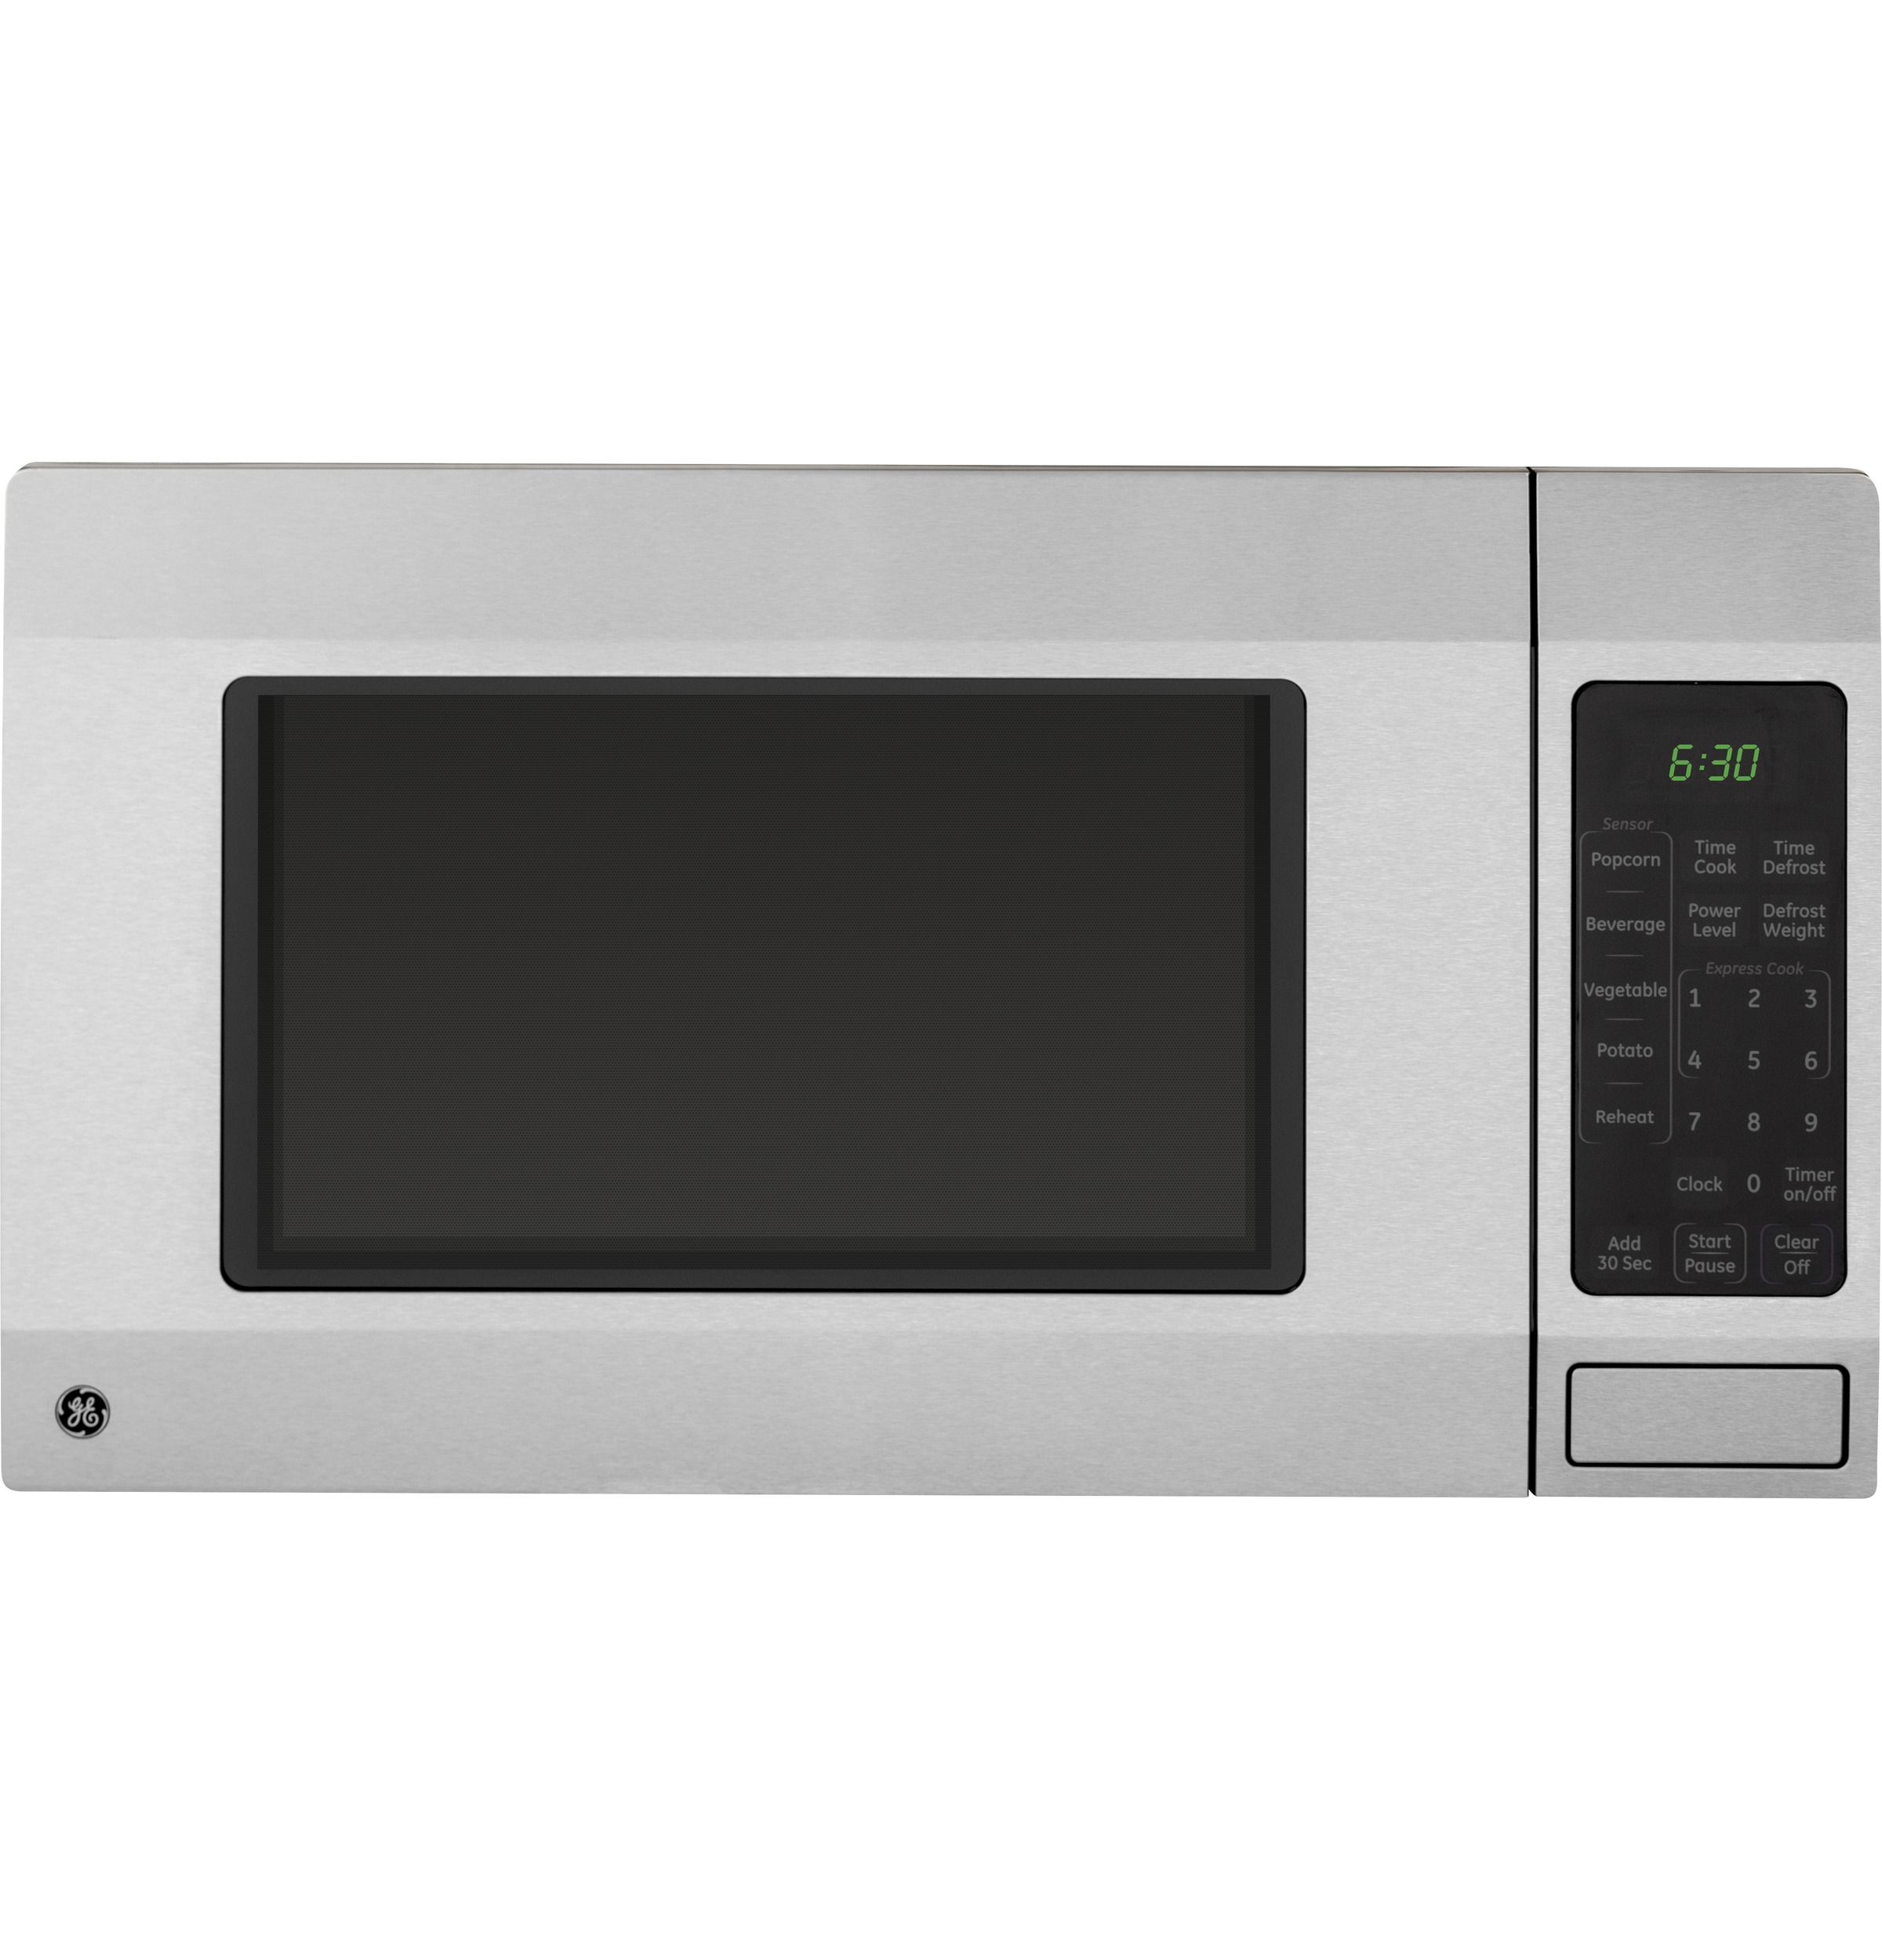 GE 1.6 cu. ft. Countertop Microwave Oven, Stainless